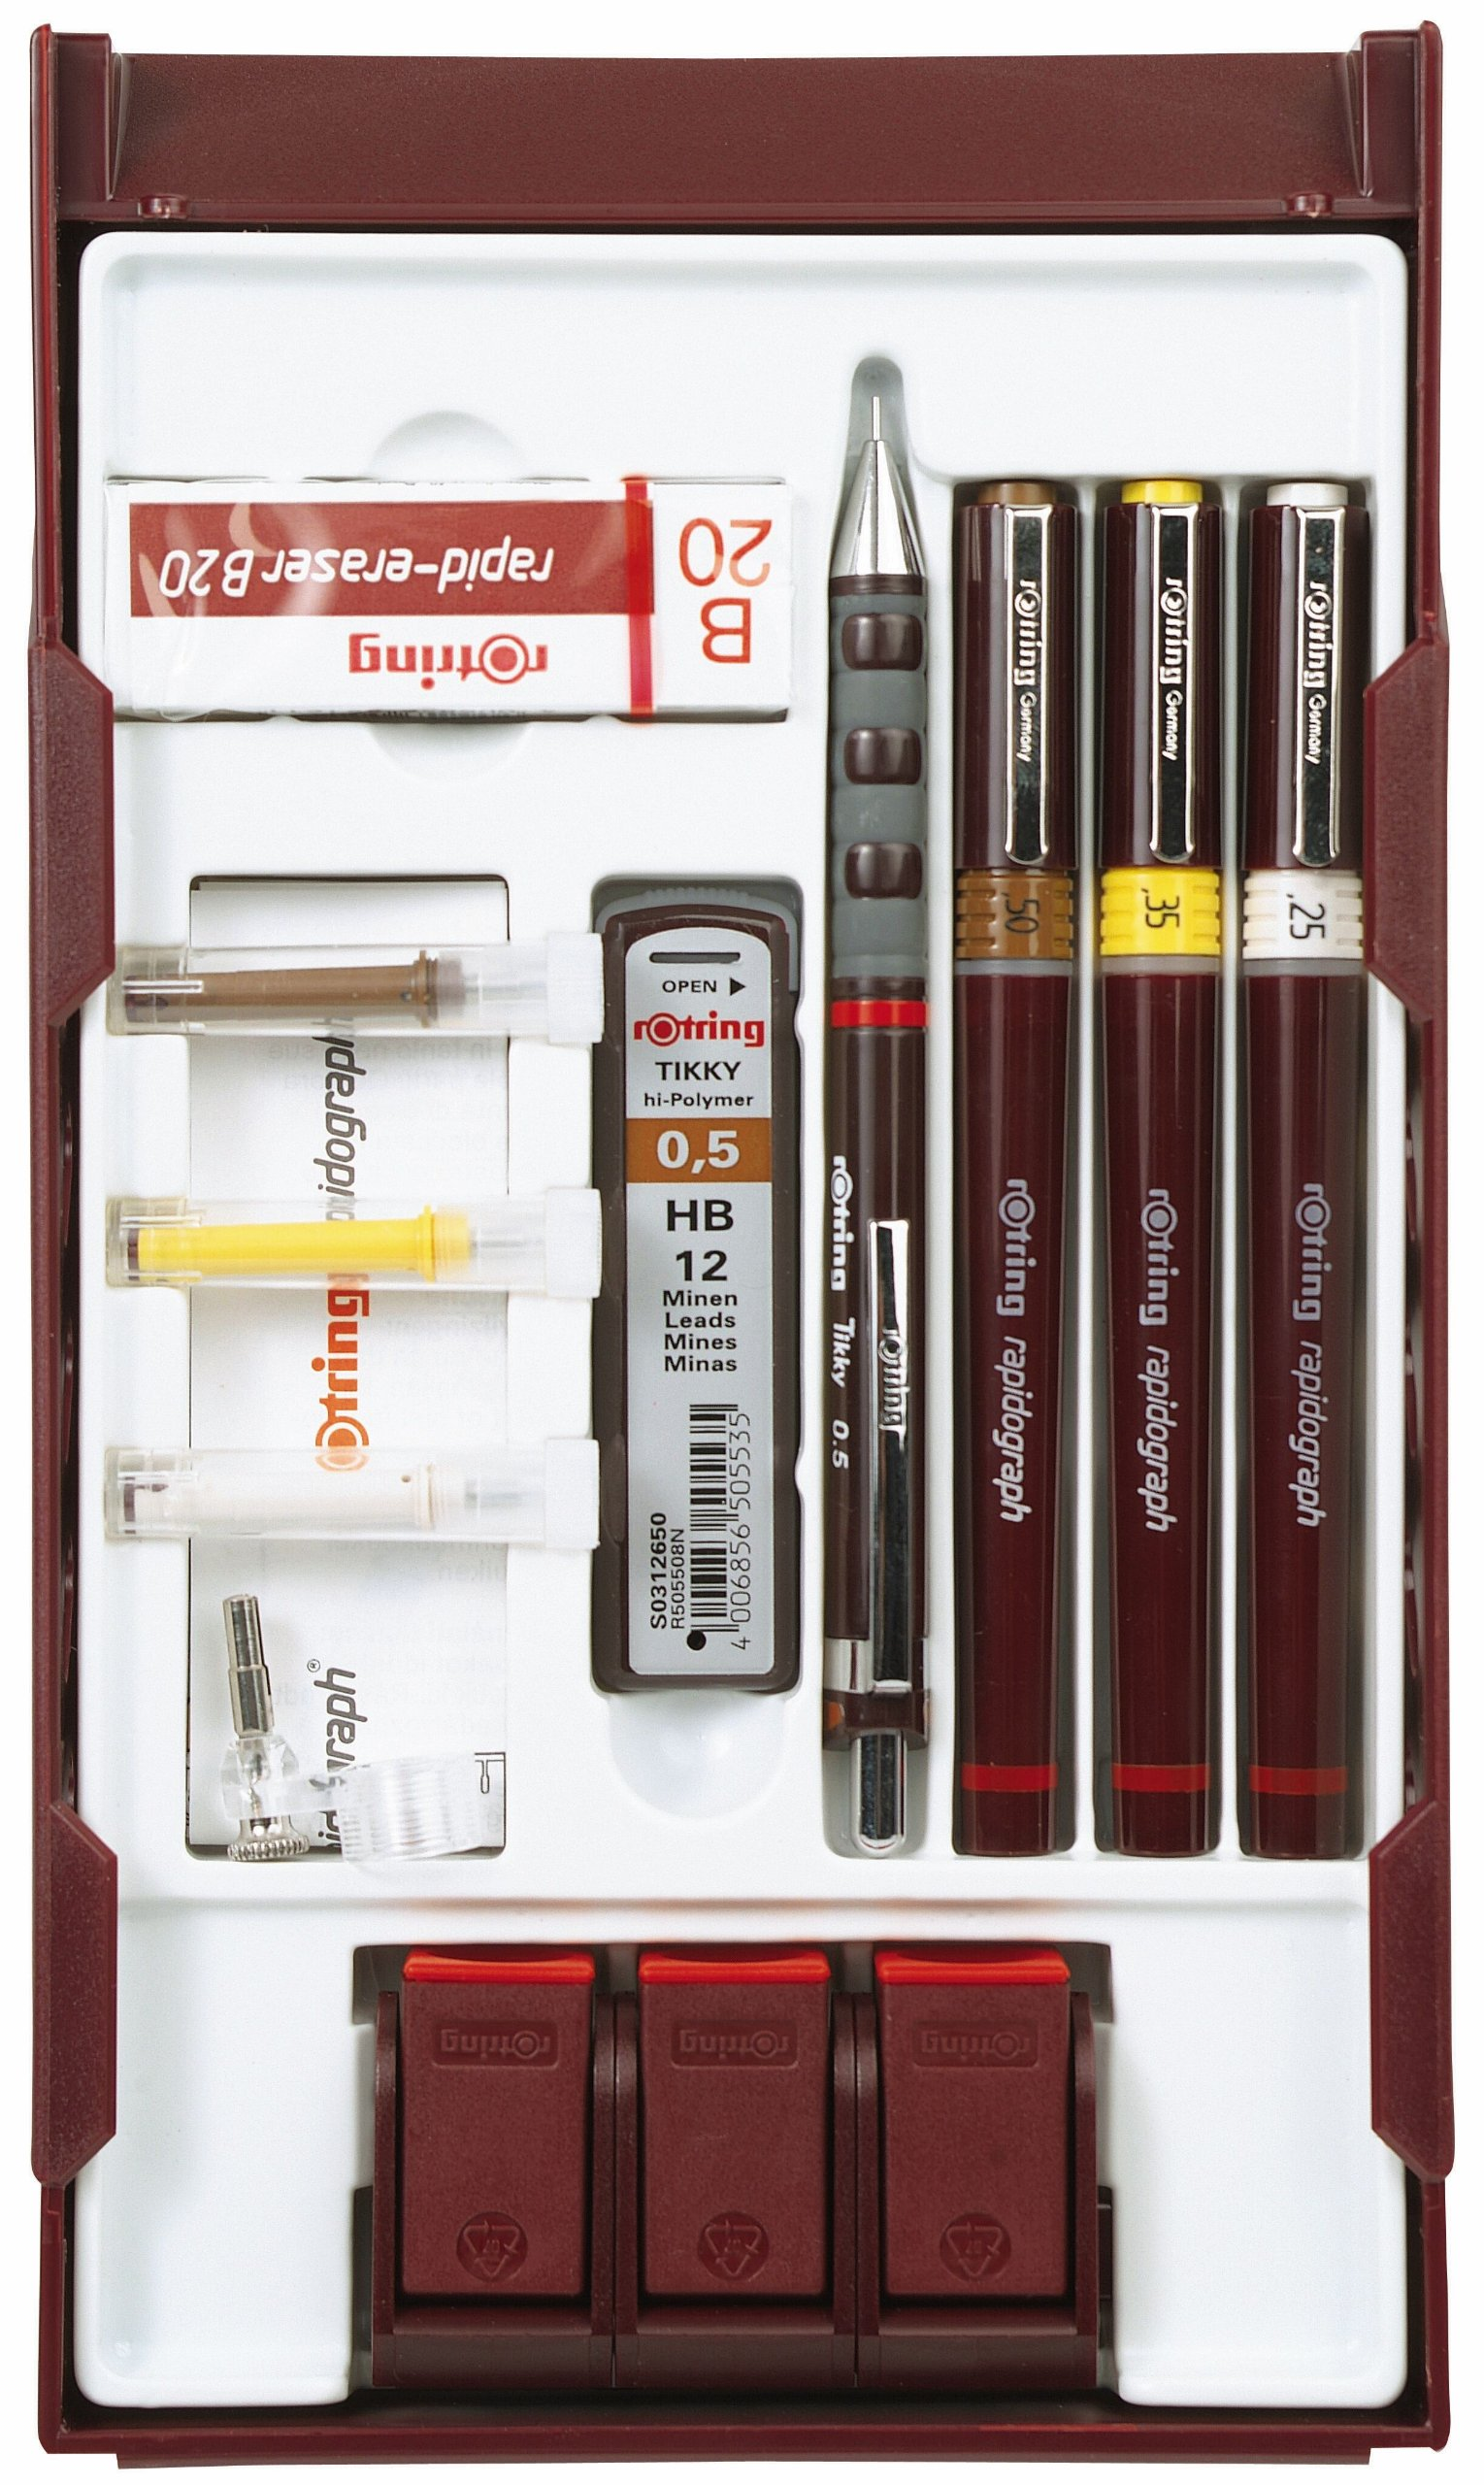 rOtring Rapidograph Technical Drawing Pen College Pen Station Set, 3 Pens with Line Widths of 0.25mm to 0.5mm, Brown (S0699530)